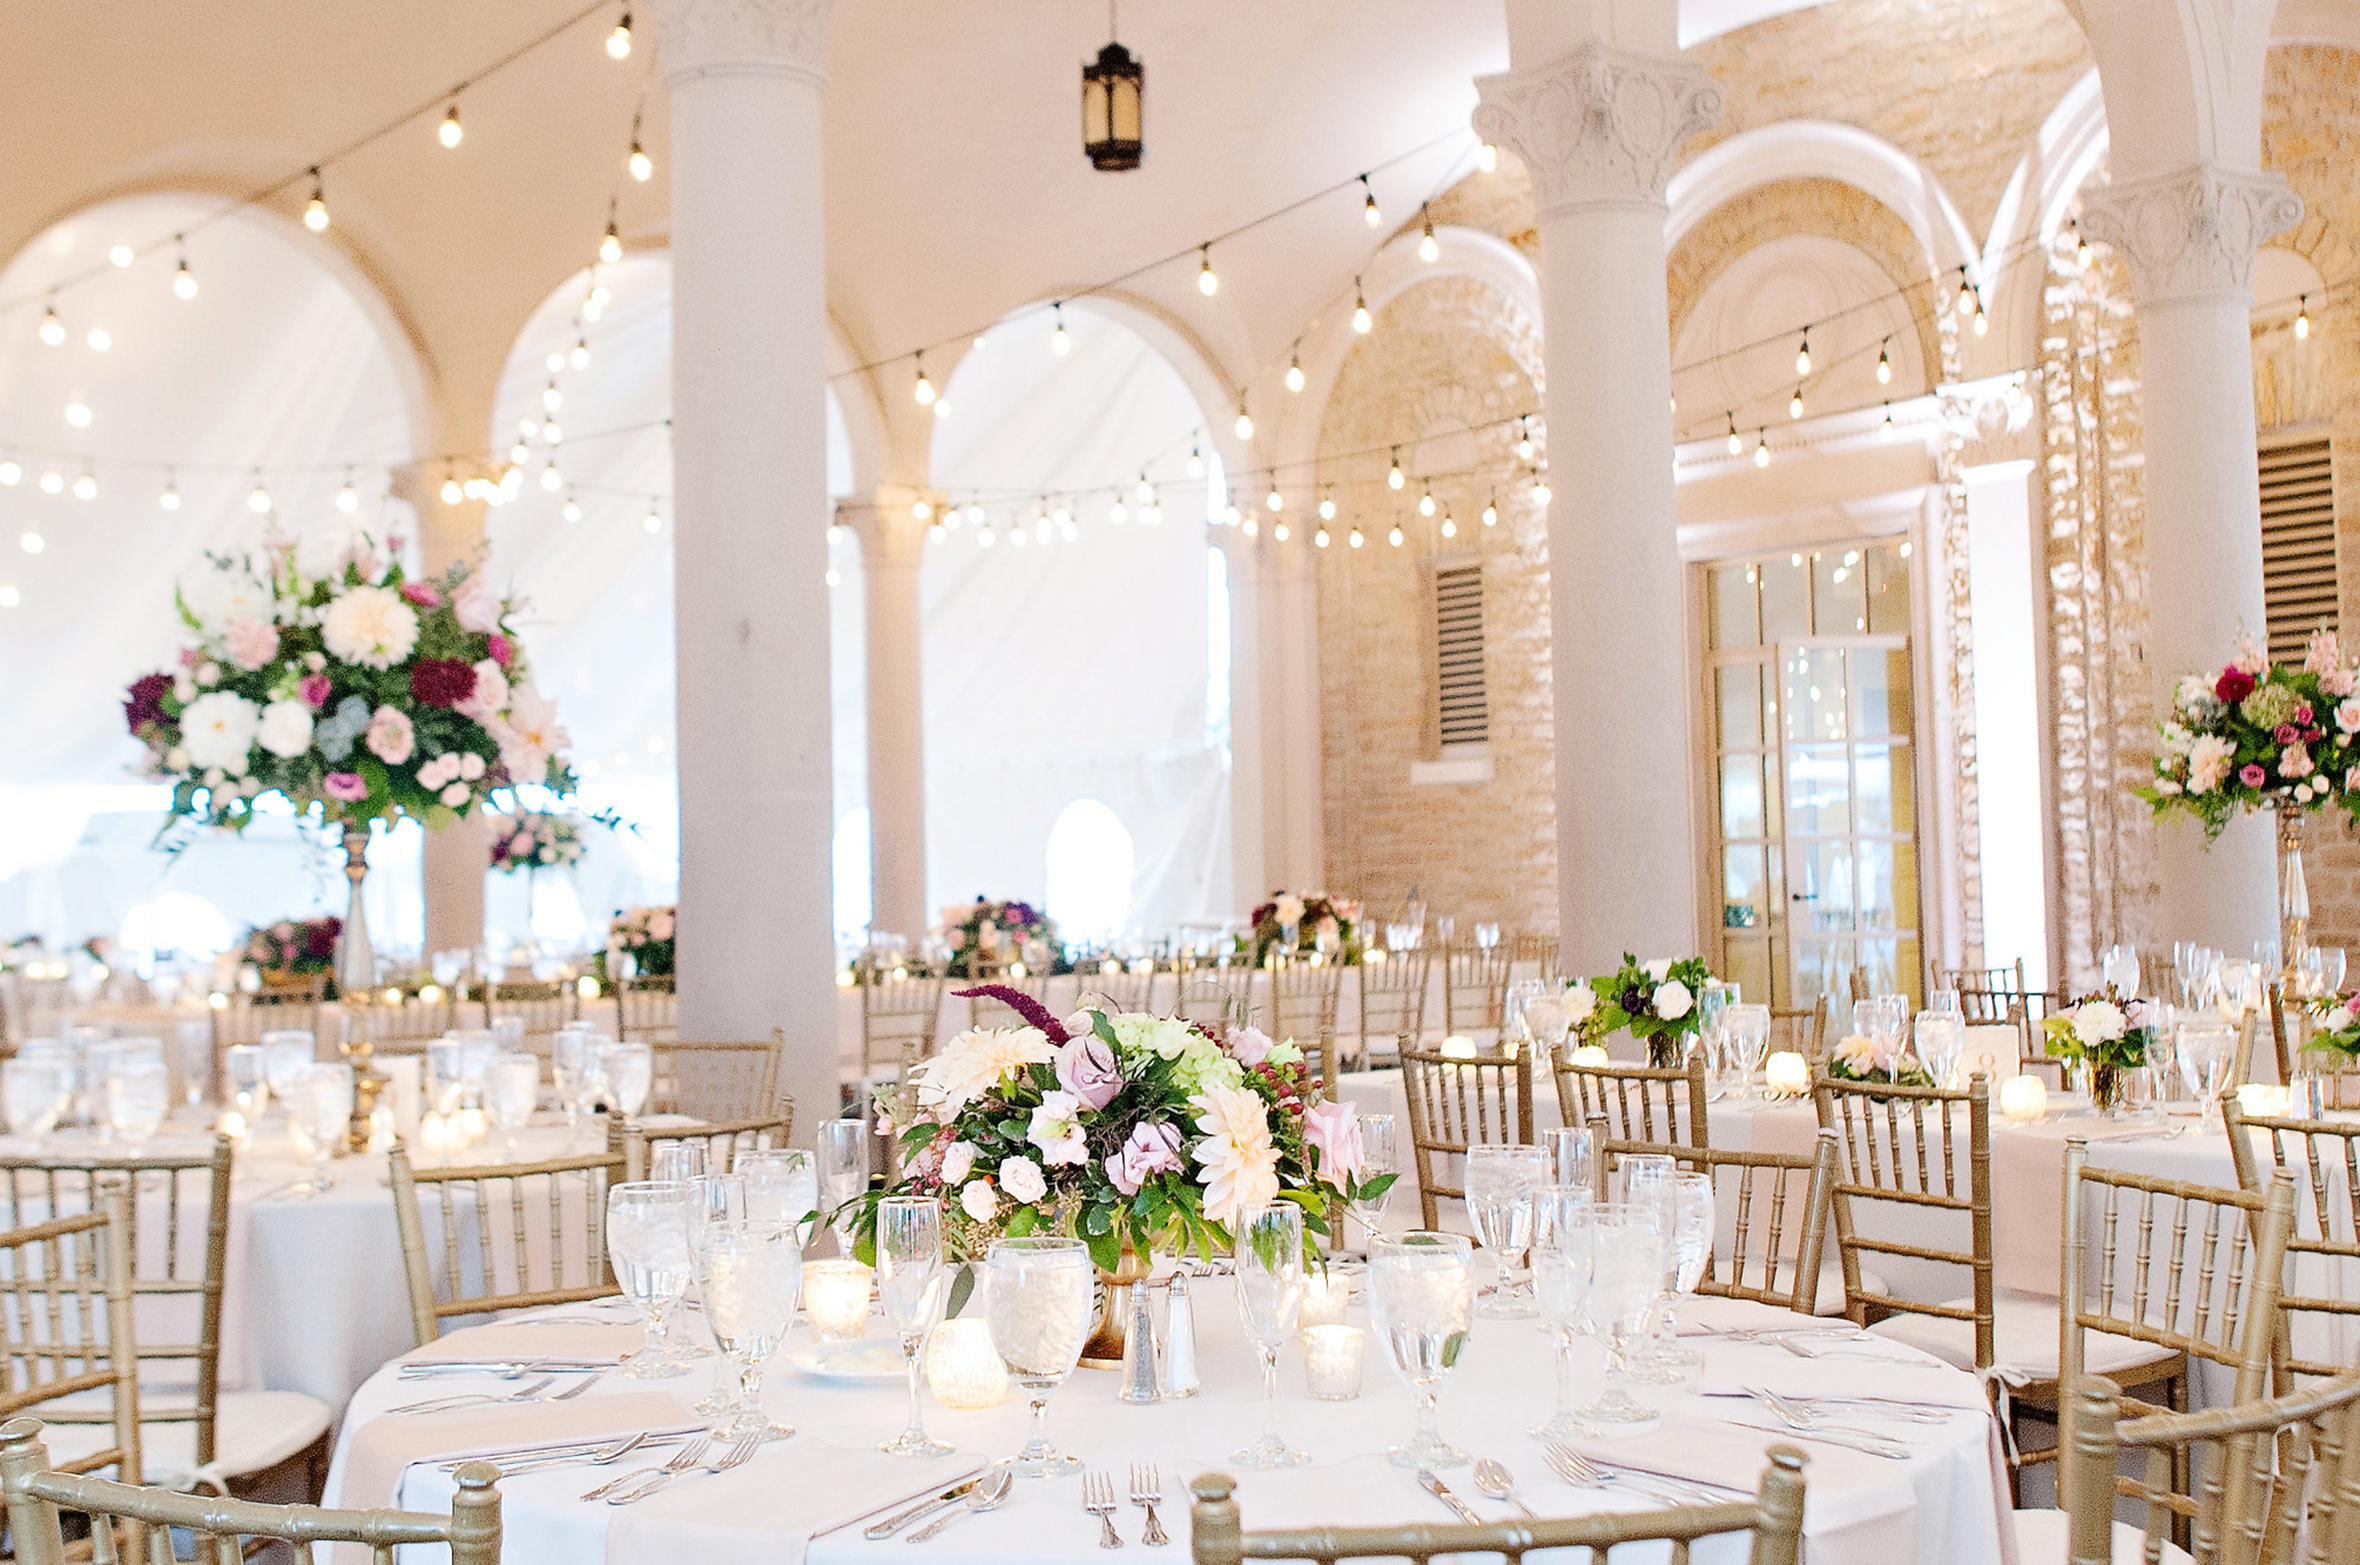 Pastel white, blush, pink, and burgundy fall wedding flowers for tented outdoor reception tables in the Ault Park Pavilion.